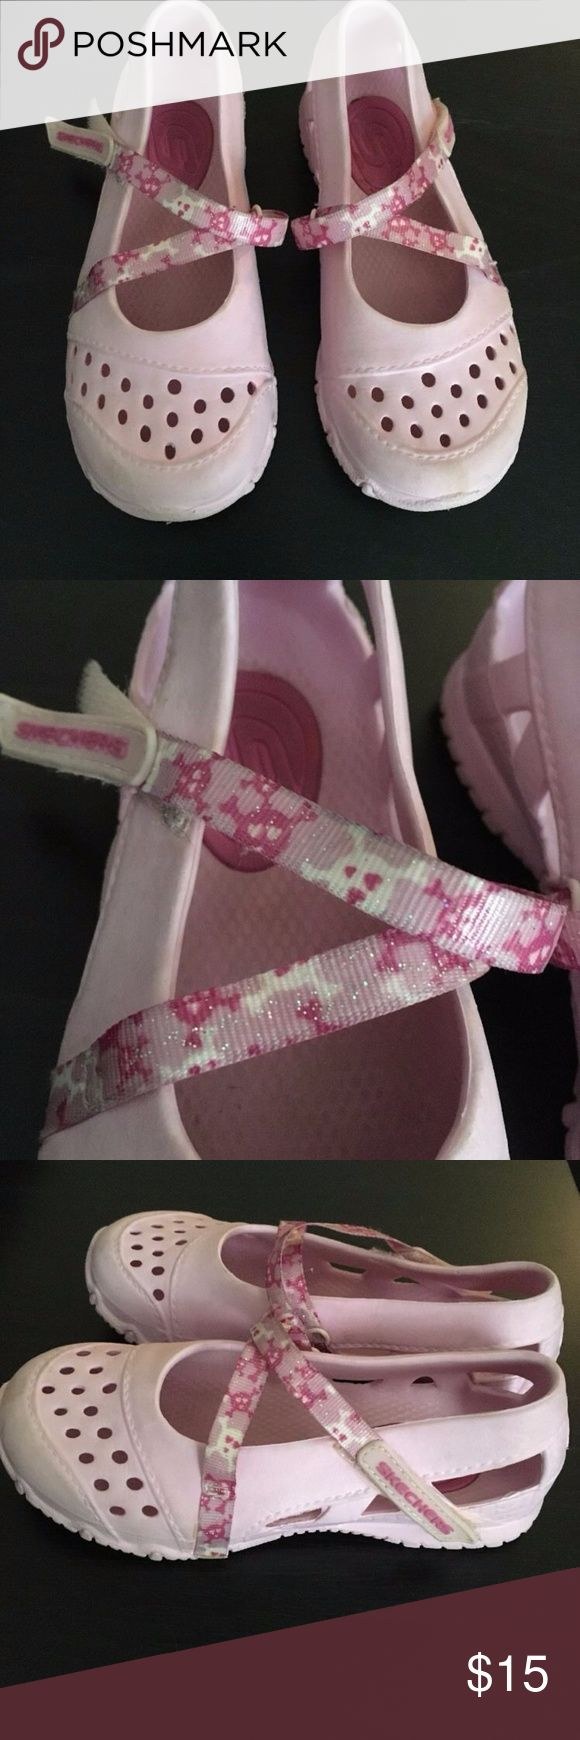 Maryjane Sketchers With Skull Straps Little Girls Pink Maryjane Sketchers With Skull Straps Size 10 Sketchers Shoes Slippers